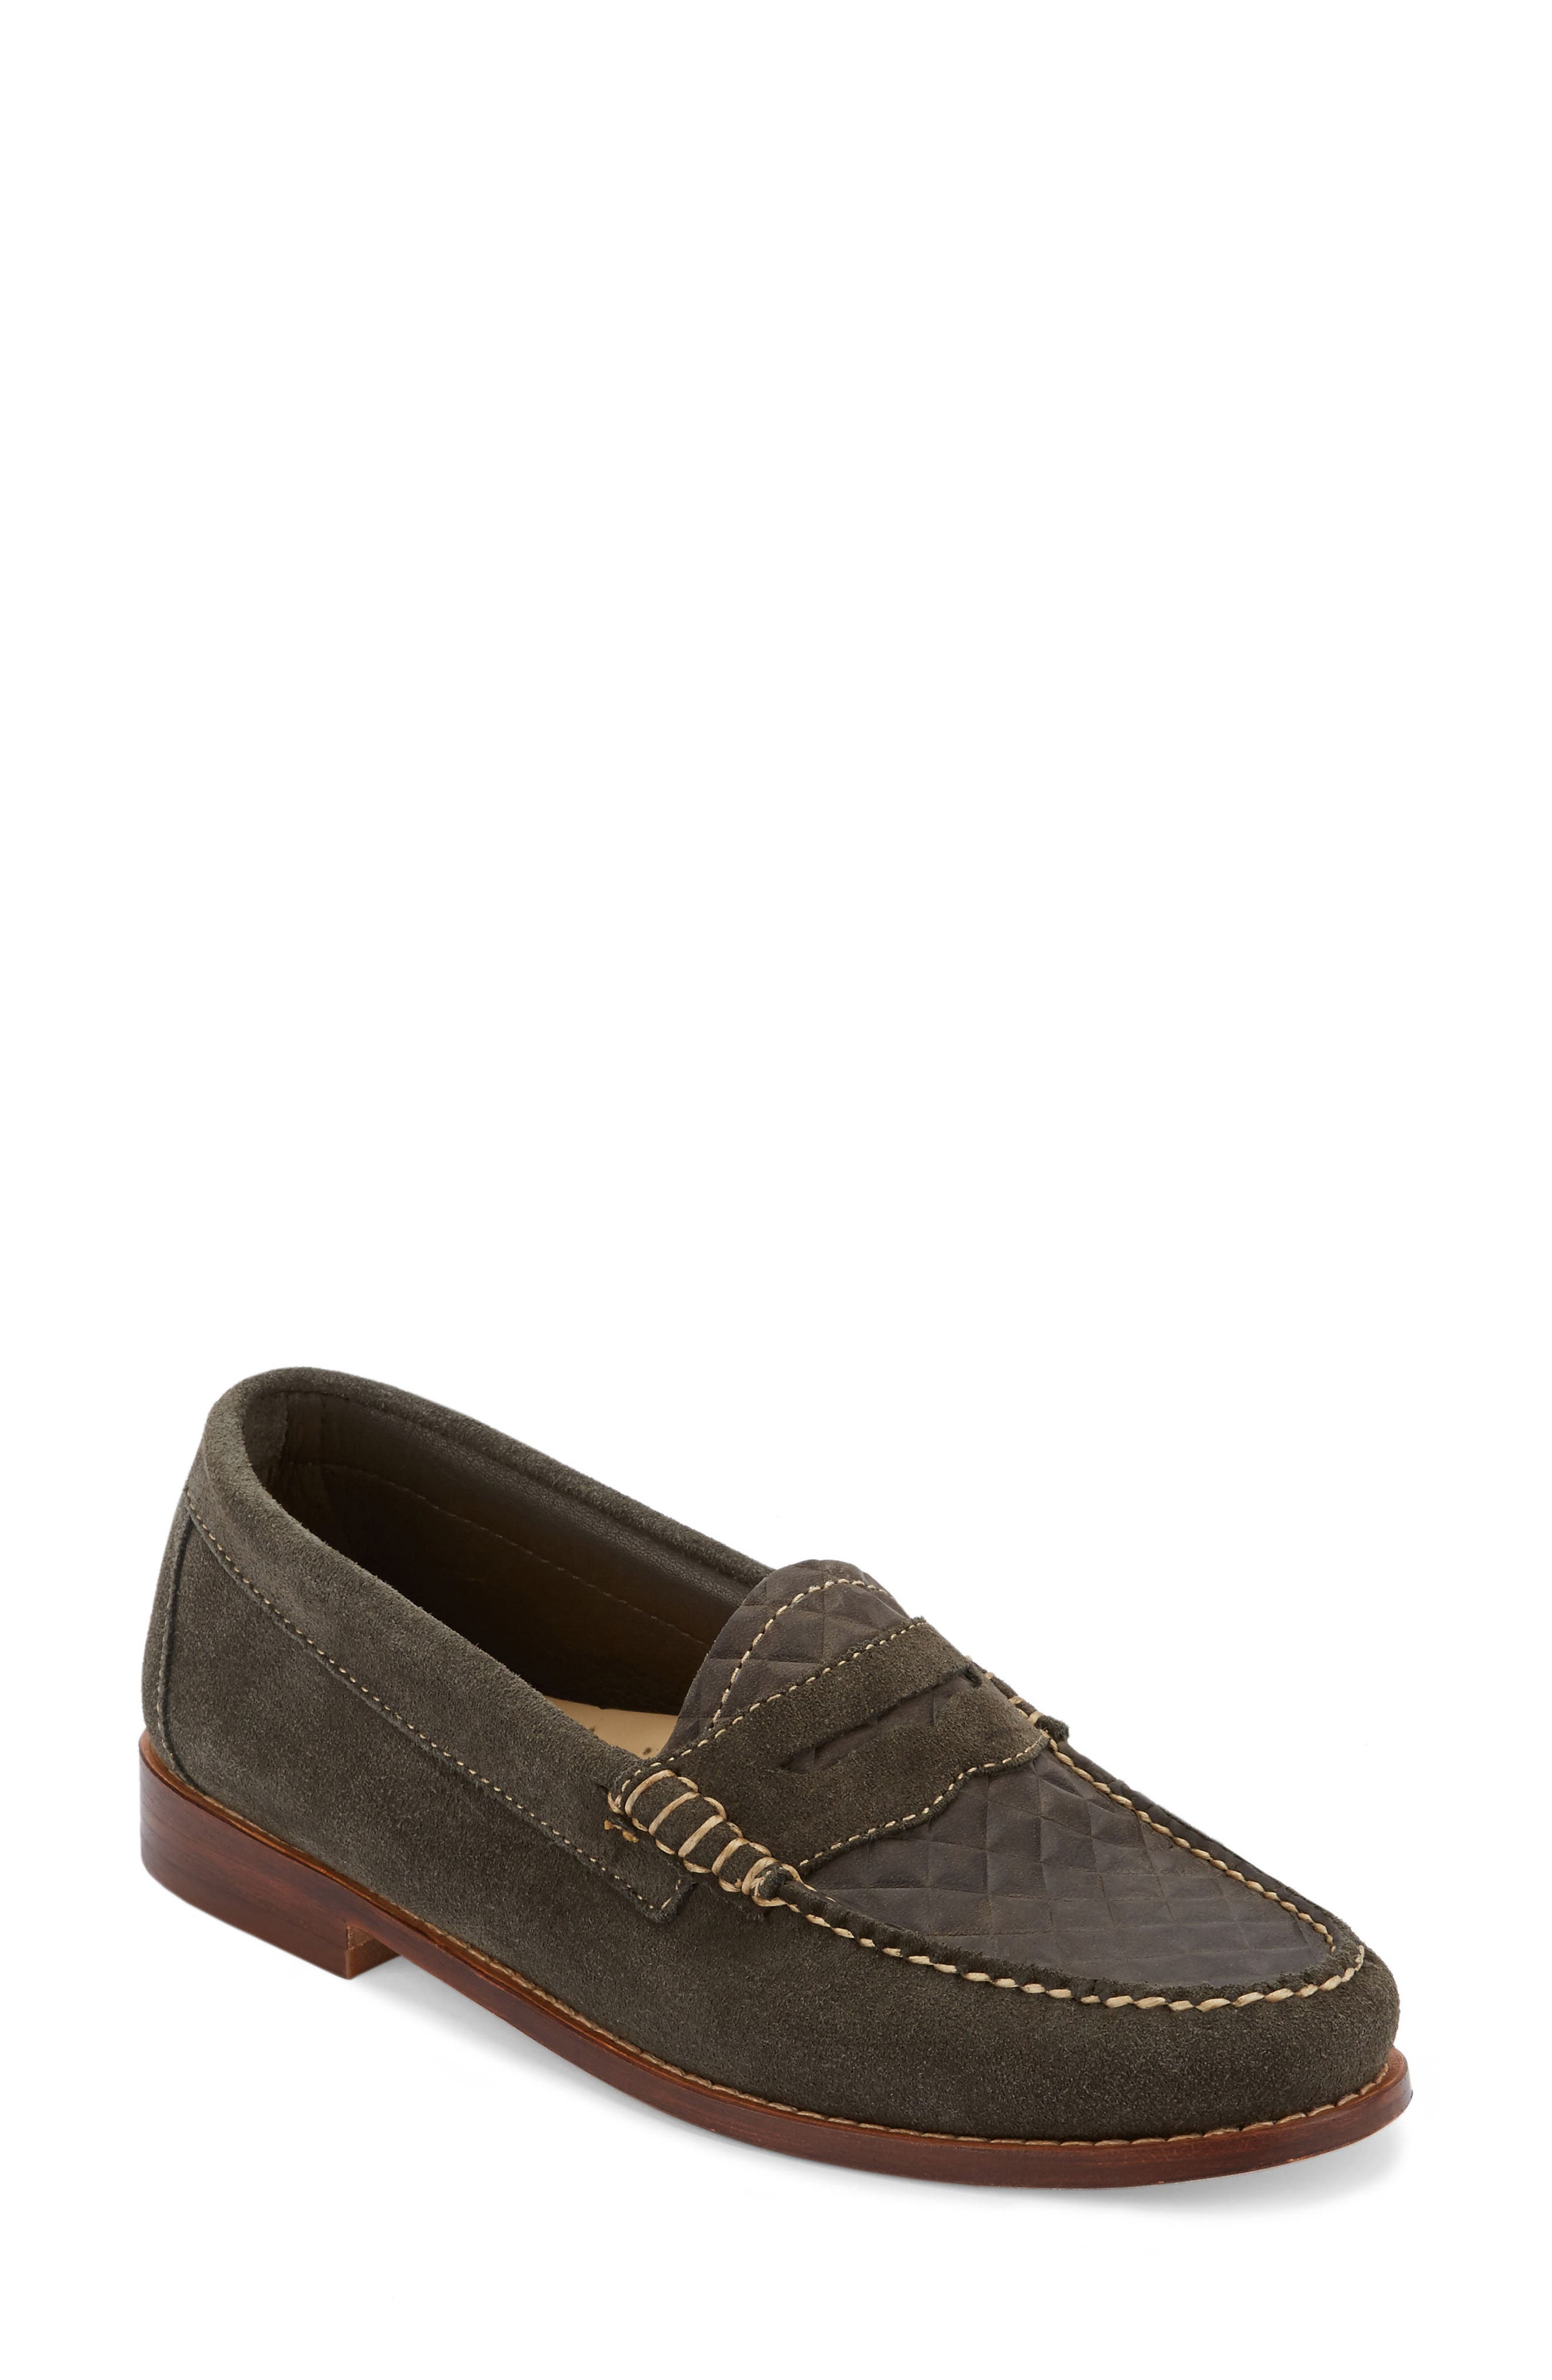 'Whitney' Loafer,                             Main thumbnail 3, color,